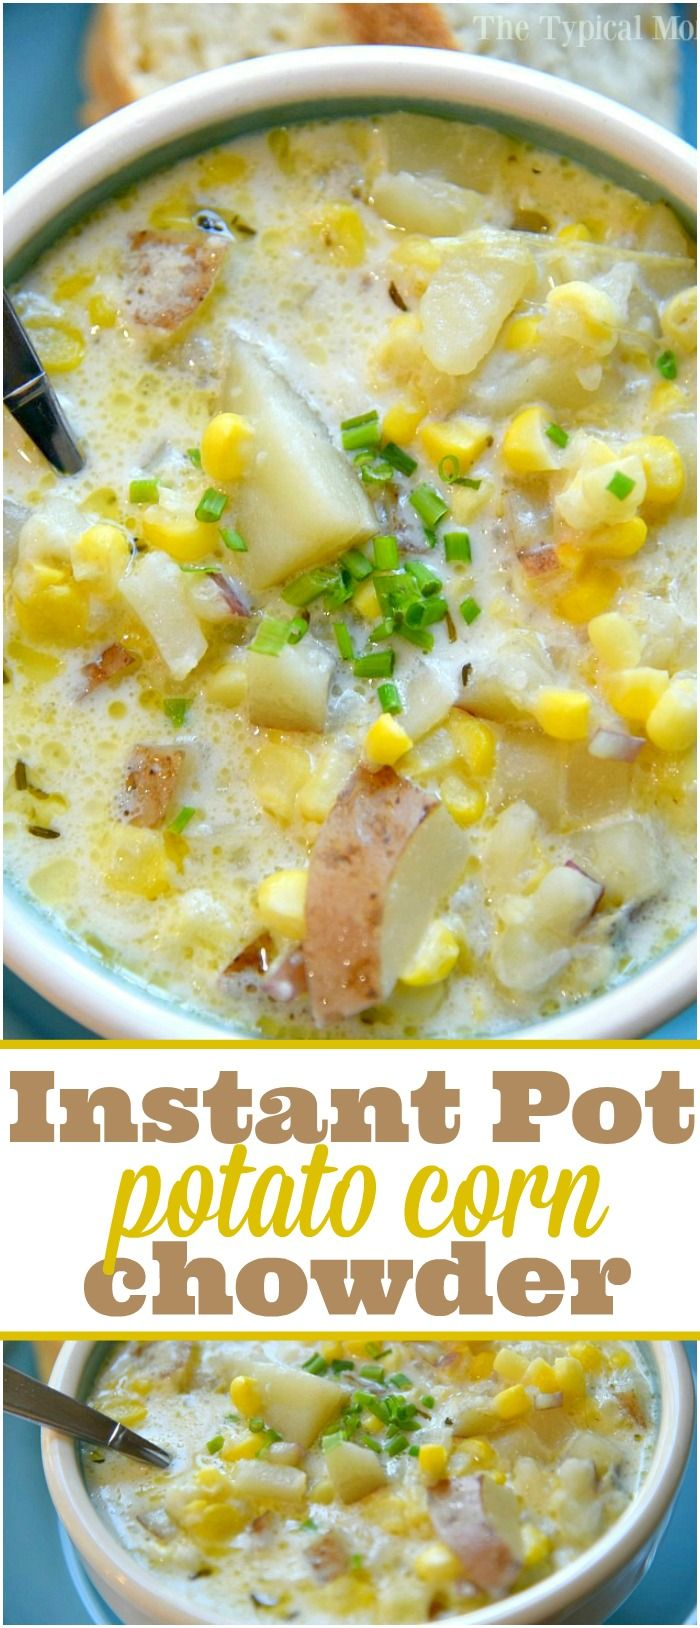 This Instant Pot potato corn chowder is amazing!! It only takes 15 minutes including prep time and is the perfect soup all year long. via @thetypicalmom #instantpot #soup #chowder #corn #pressurecooker